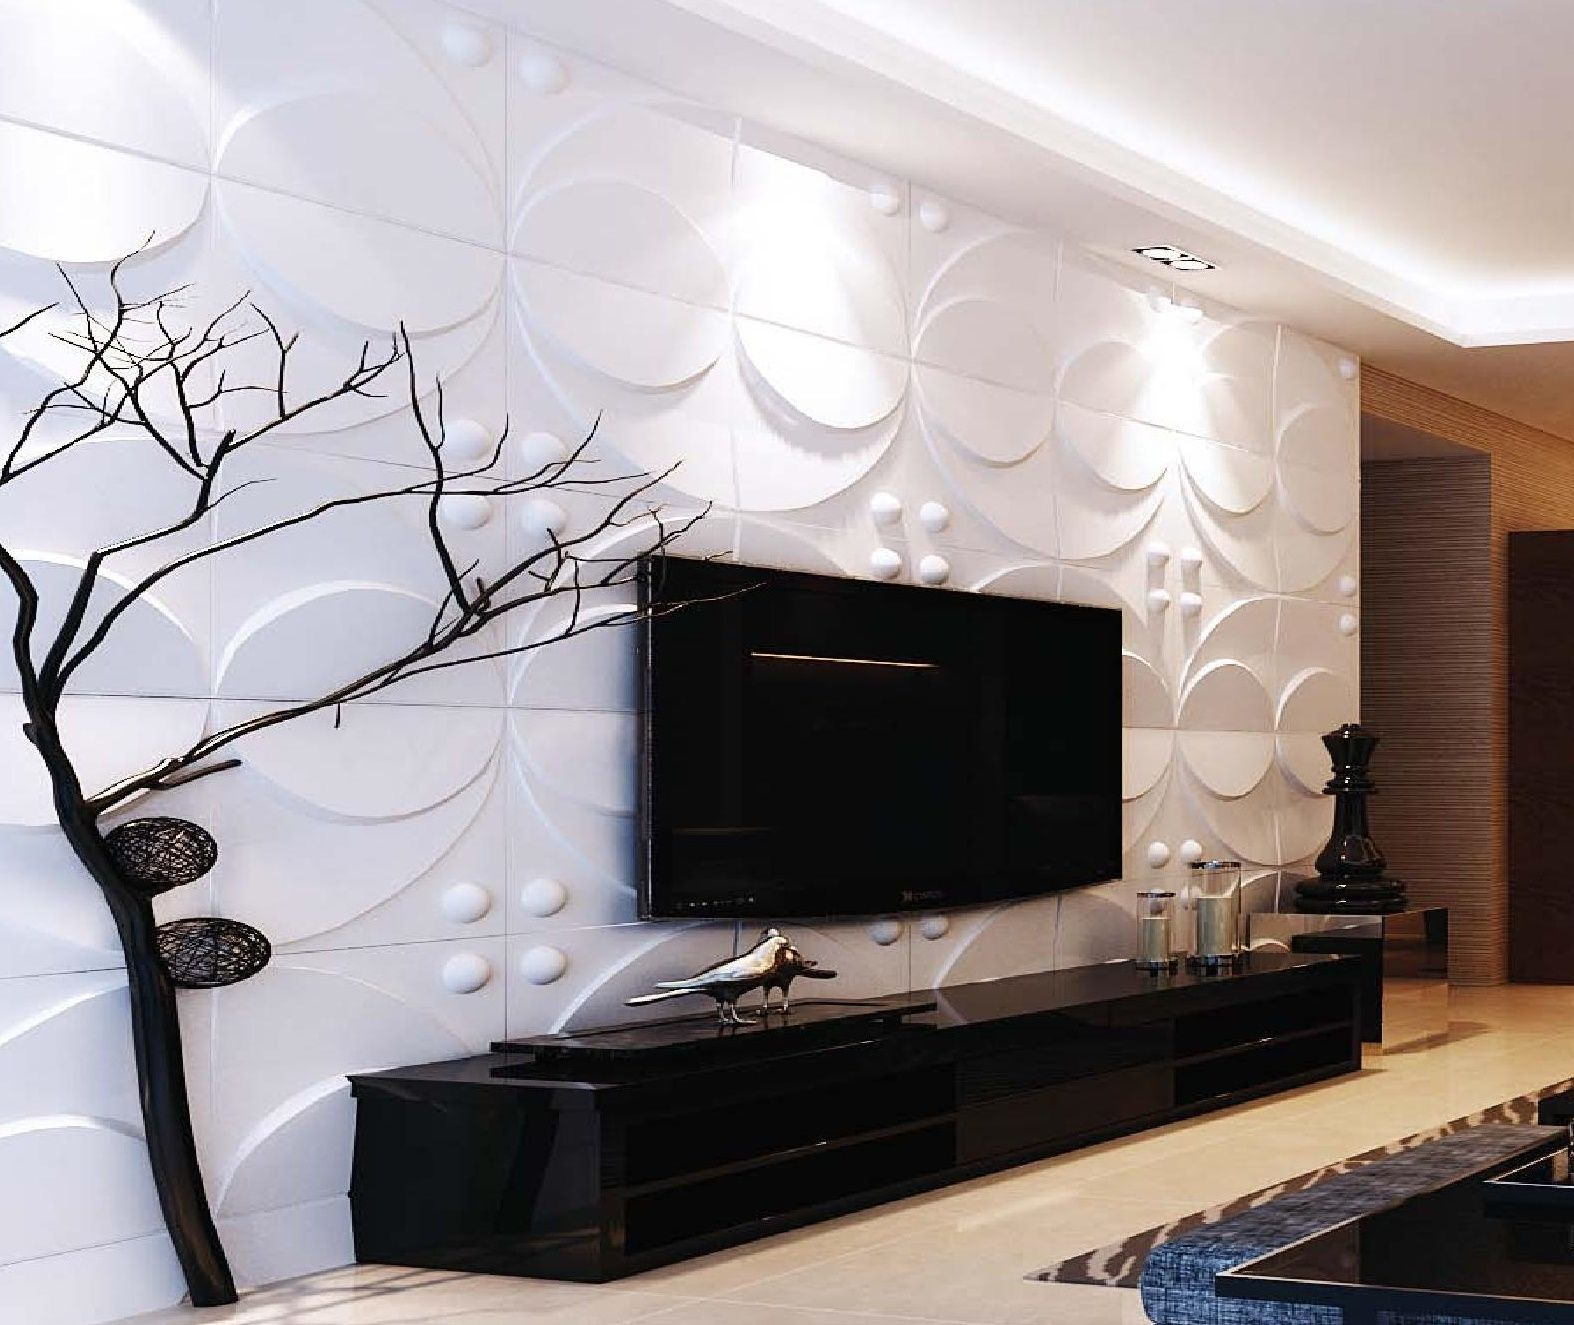 3D WINDMILL Wall Panels Blog Archive Affordable Home Innovations